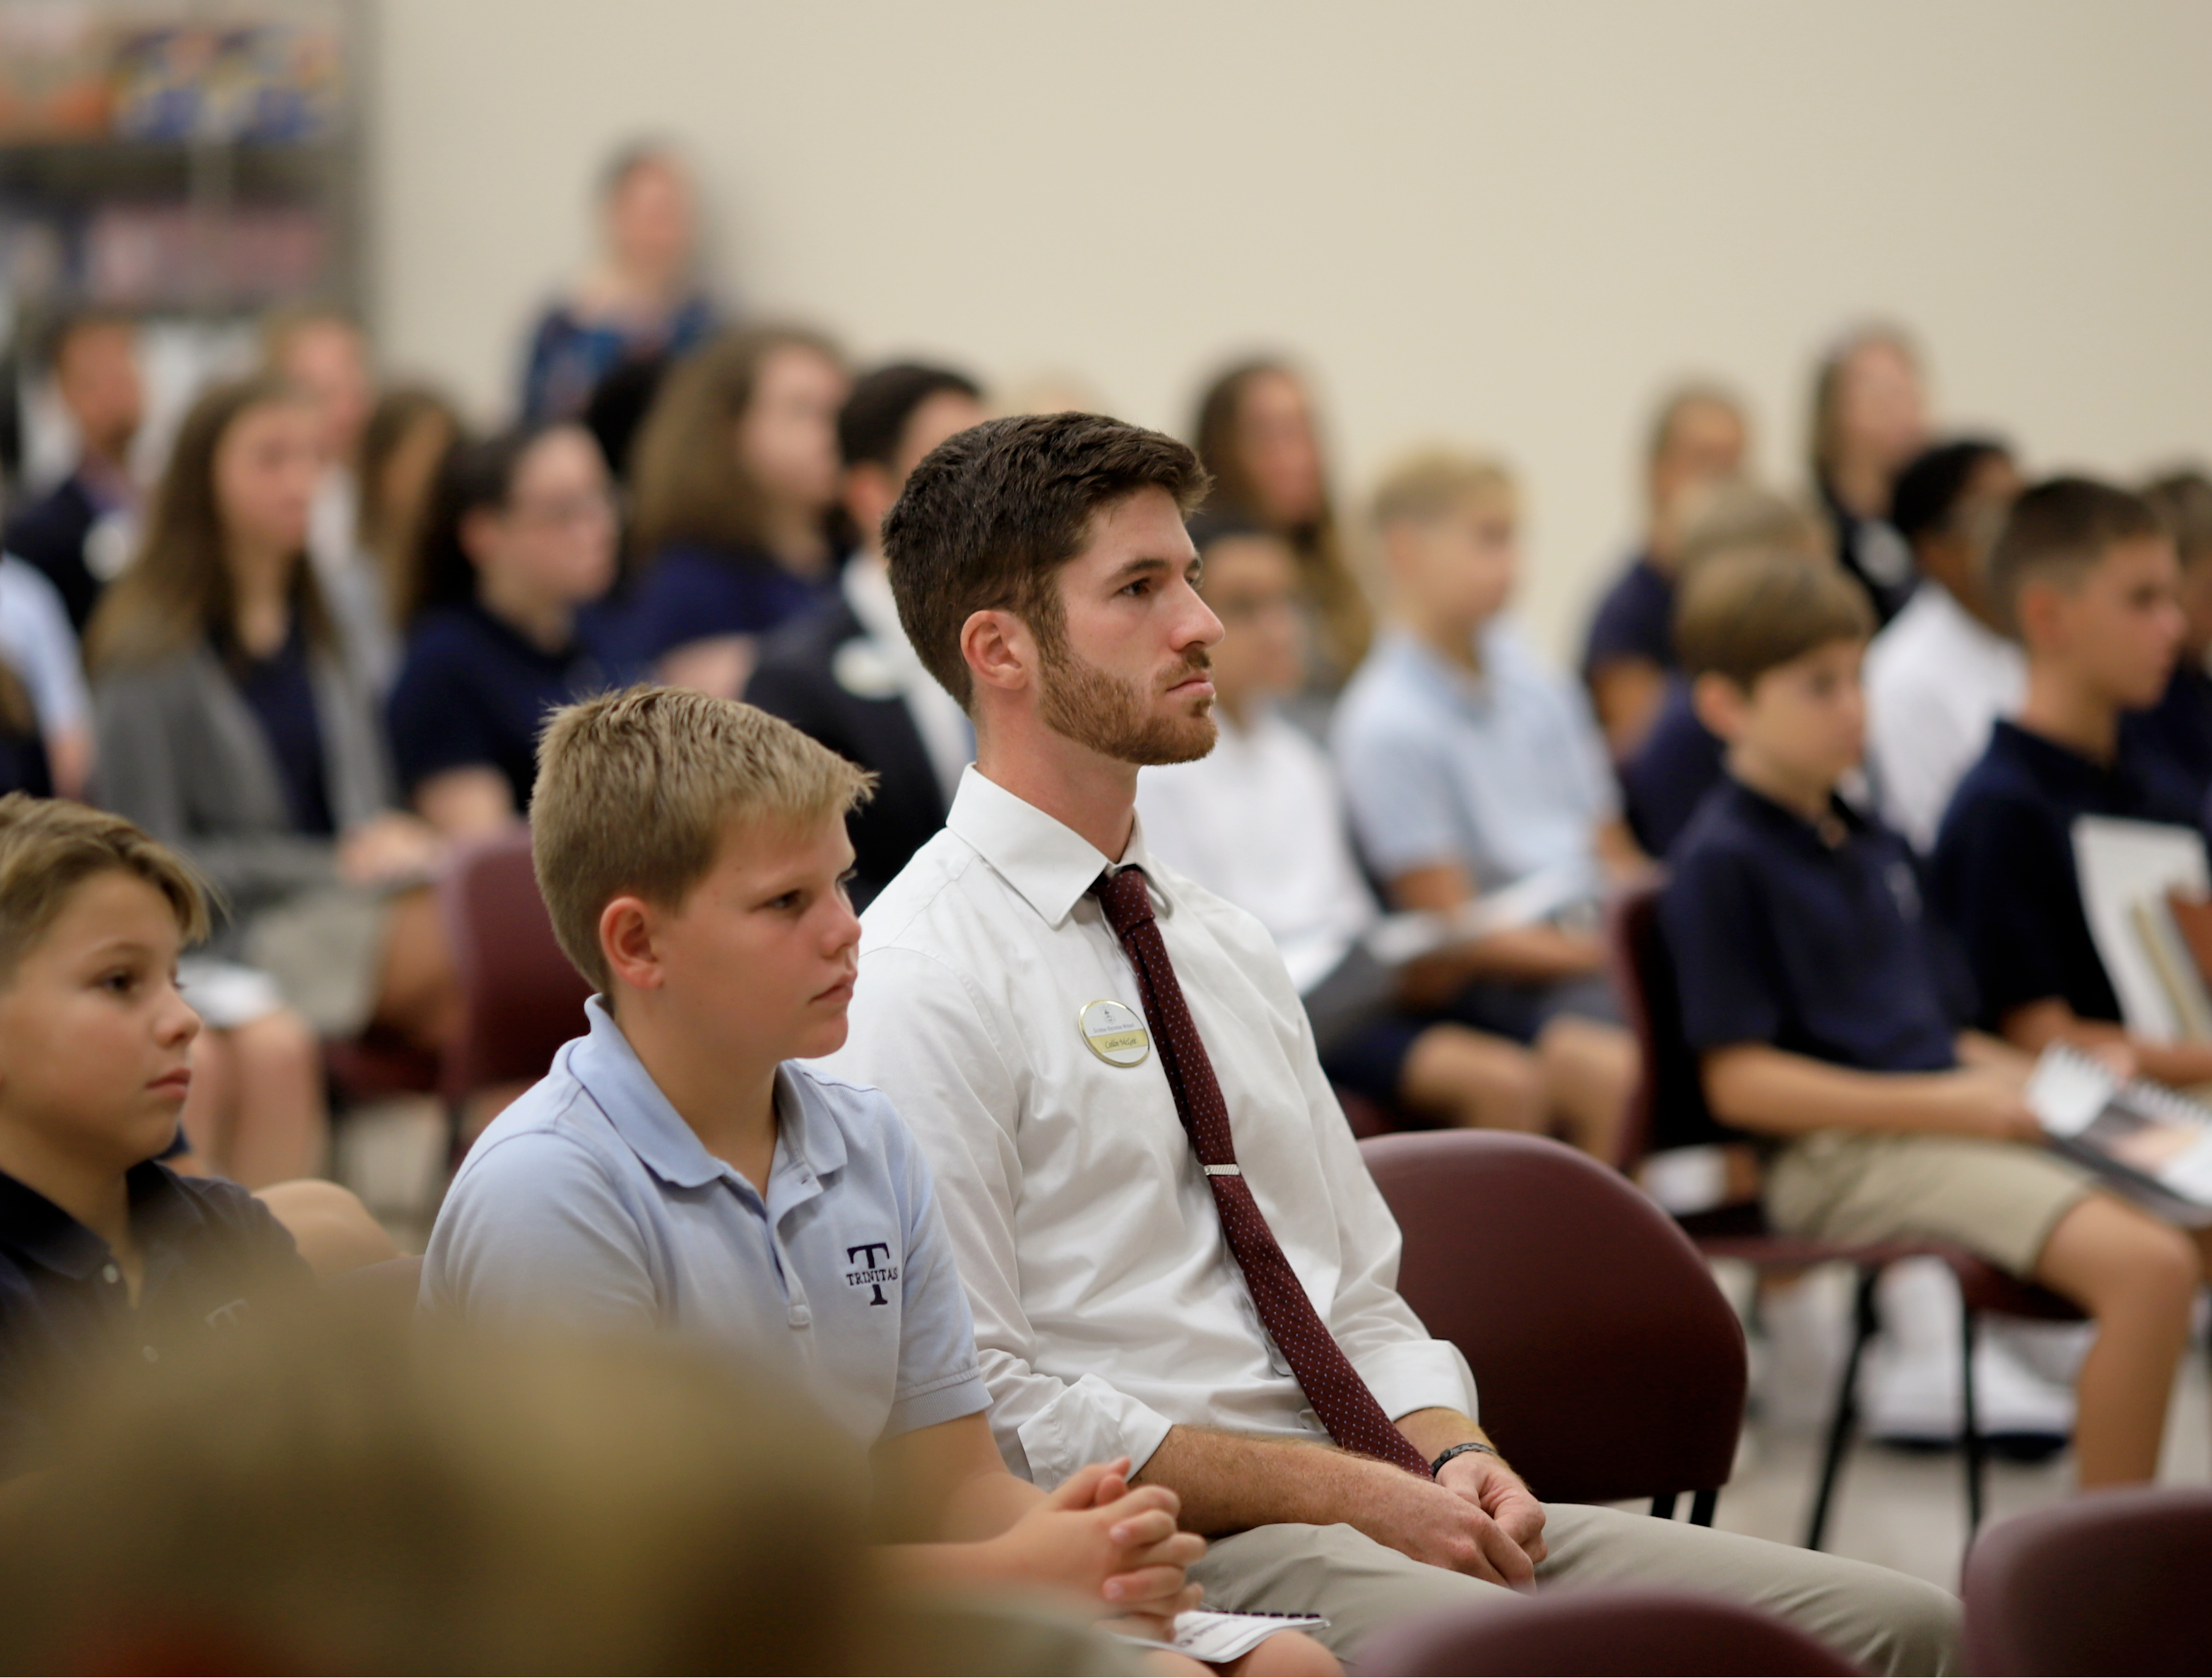 How to Know Which Christian School is Right for Your Family: Evangelistic vs Covenantal